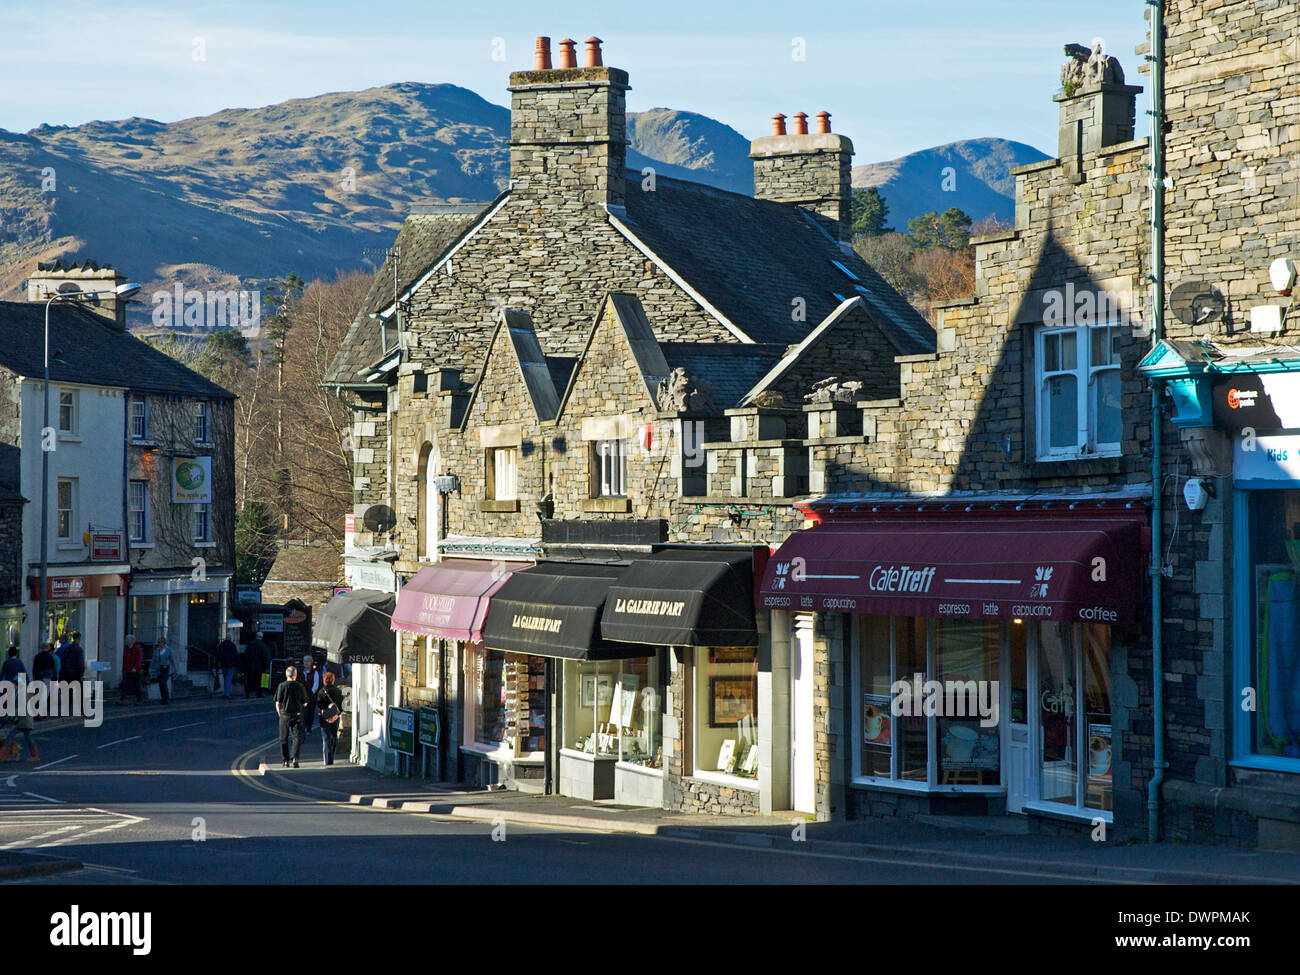 Lake Road, Ambleside, Lake District National Park, Cumbria, England UK, backed up by Loughrigg Fell - Stock Image